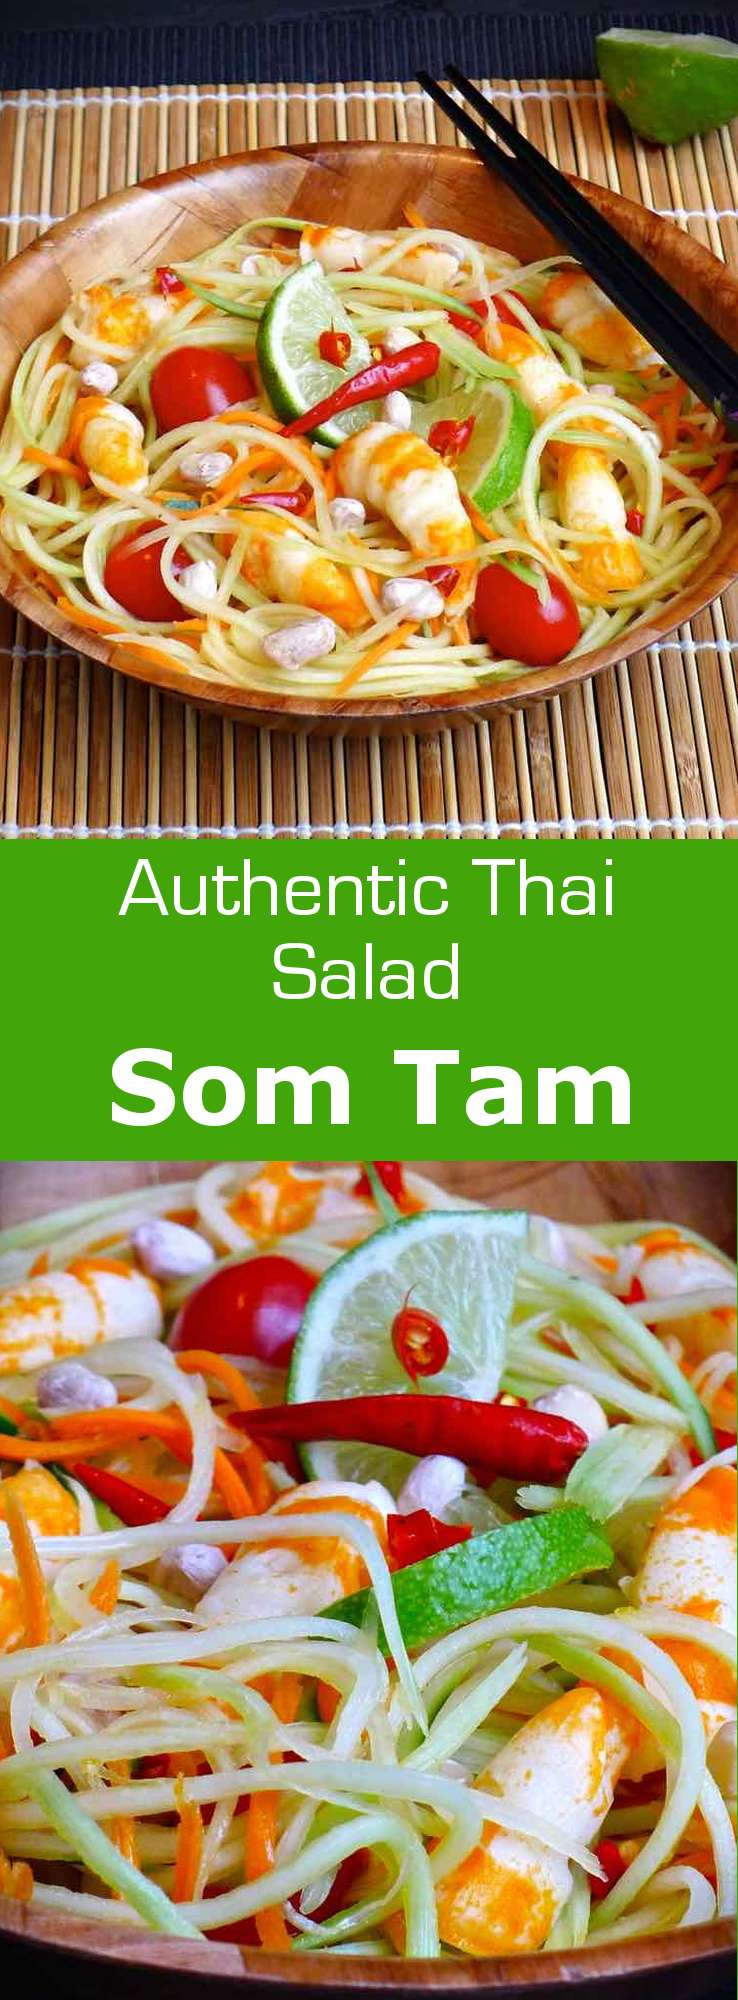 There are several versions of the som tam salad in Thailand including some with fermented fish, pickled crab or with shrimp. #thailand #salad #196flavors